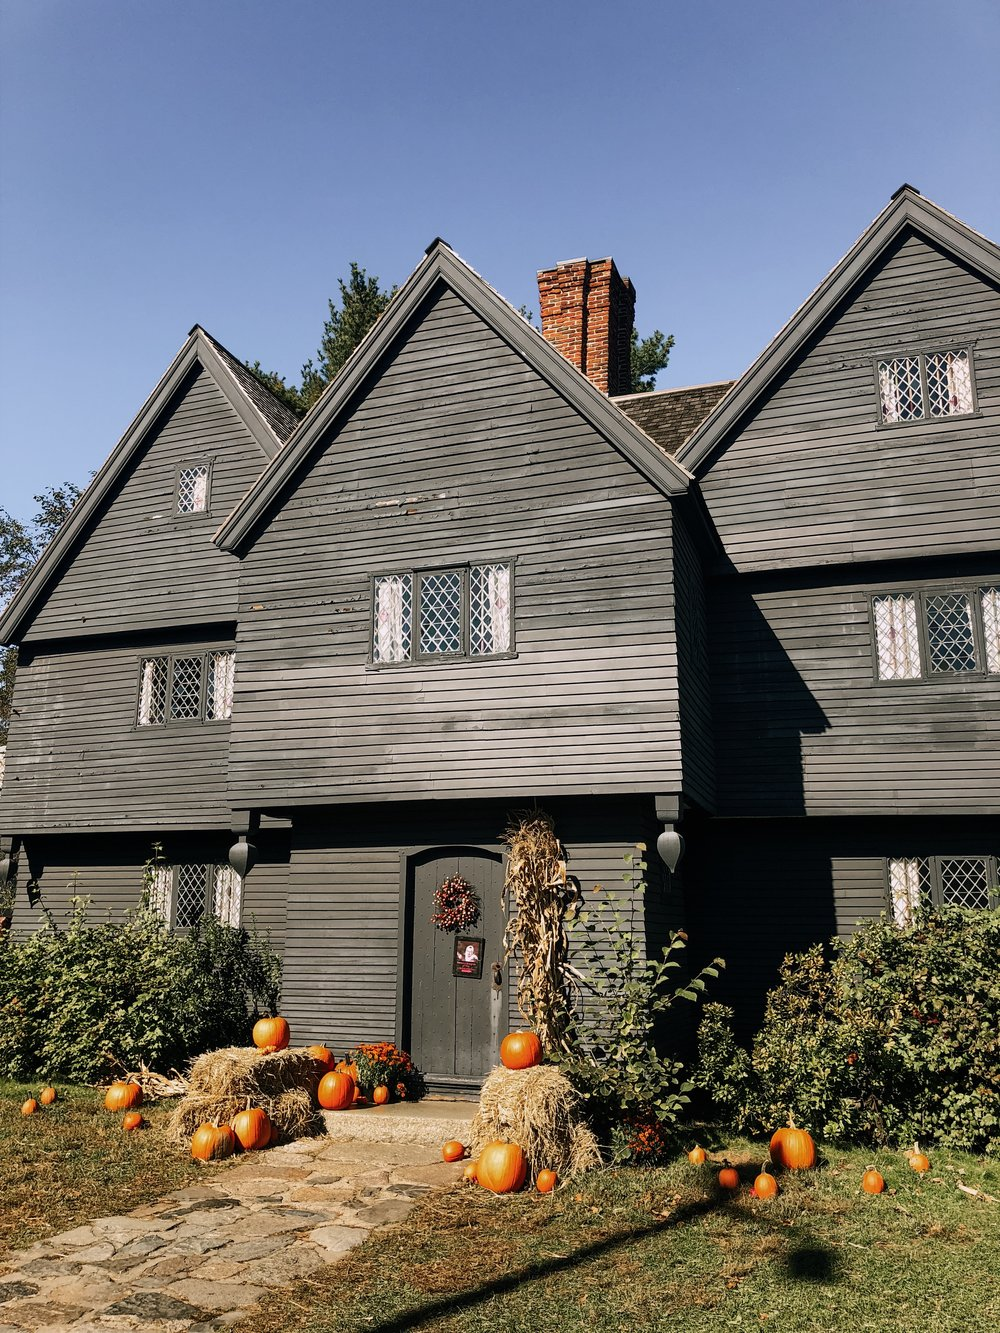 salem-mass-the-witch-house.JPG